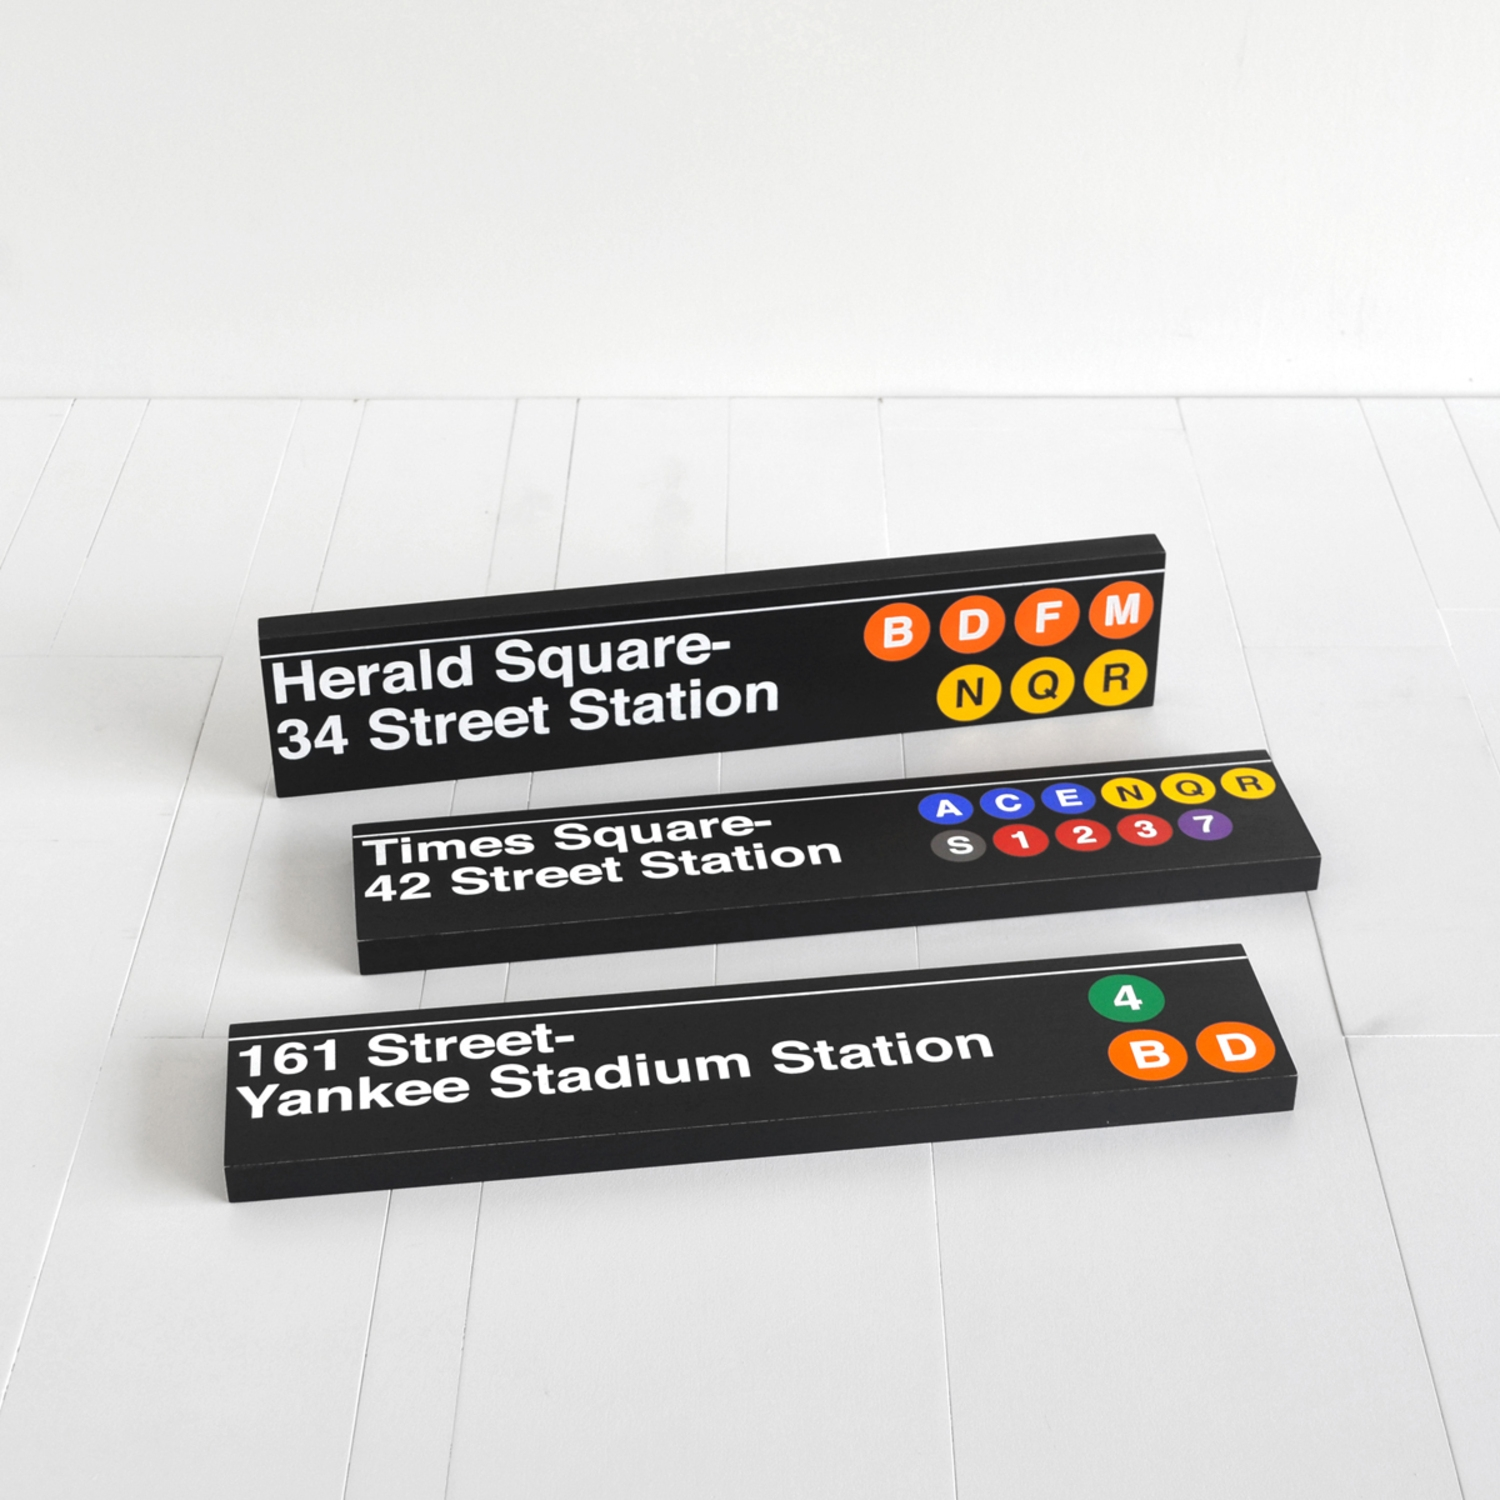 Sideway Signs - High-quality New York City subway signs officially licensed by the MTA.